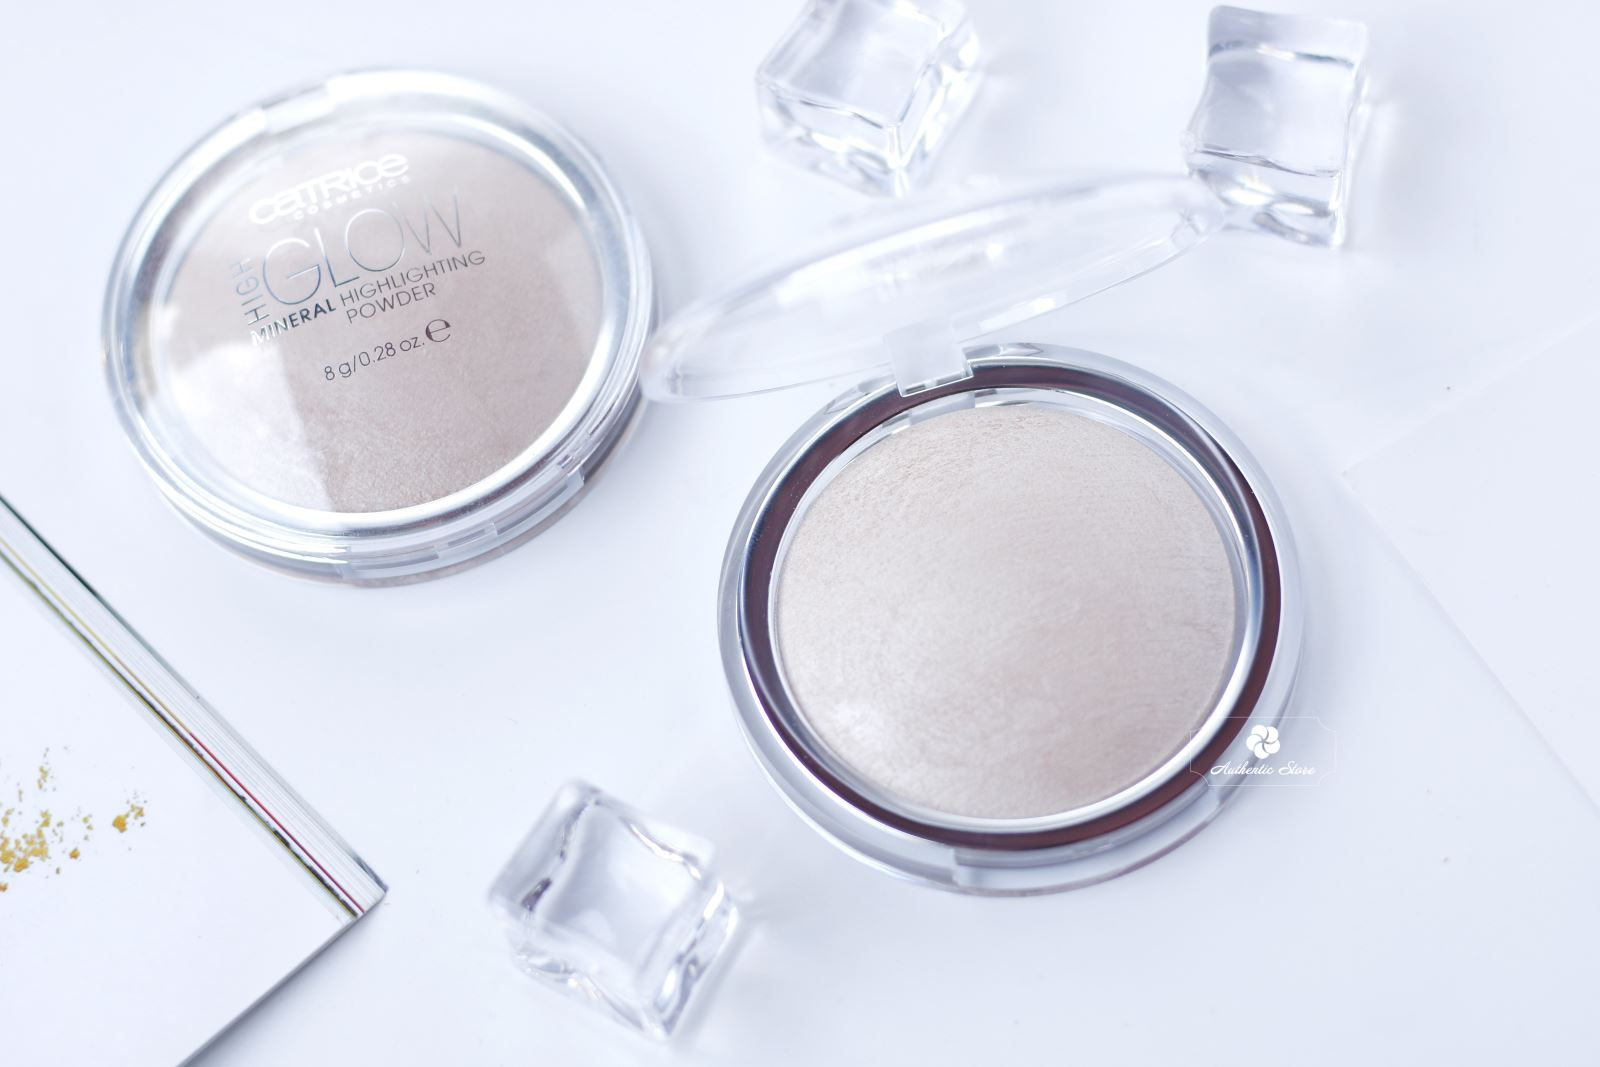 Phấn bắt sáng Catrice High Glow Highlighting Mineral Powder